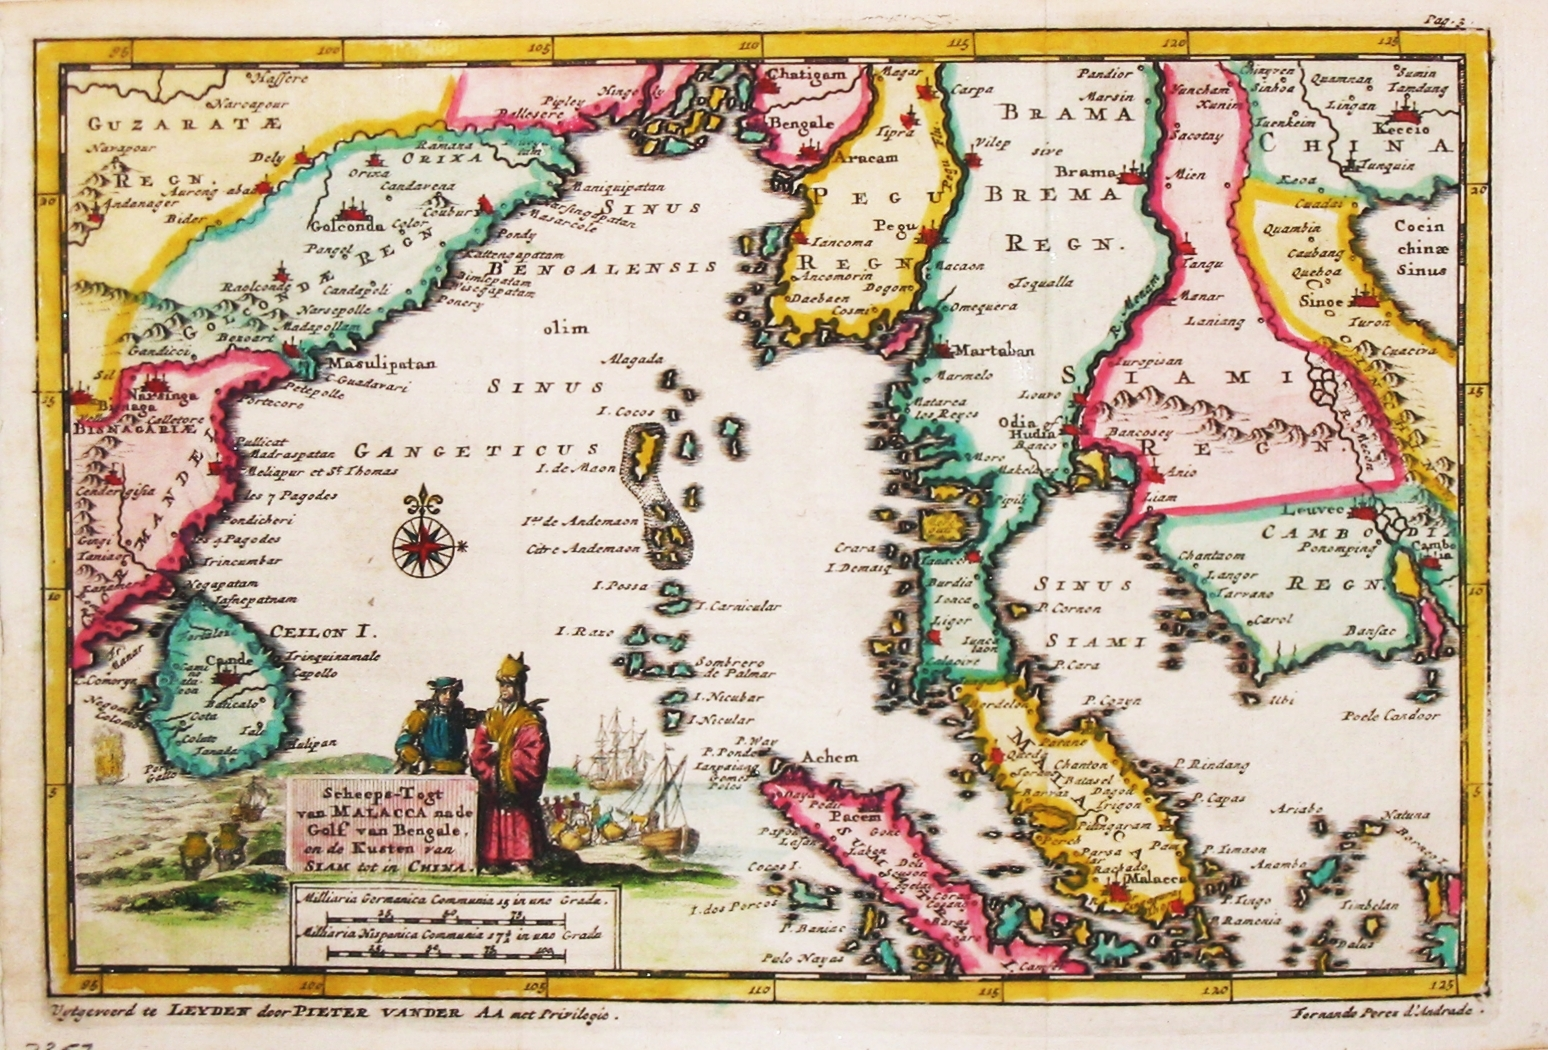 Old maps of Siam and surrounding countries